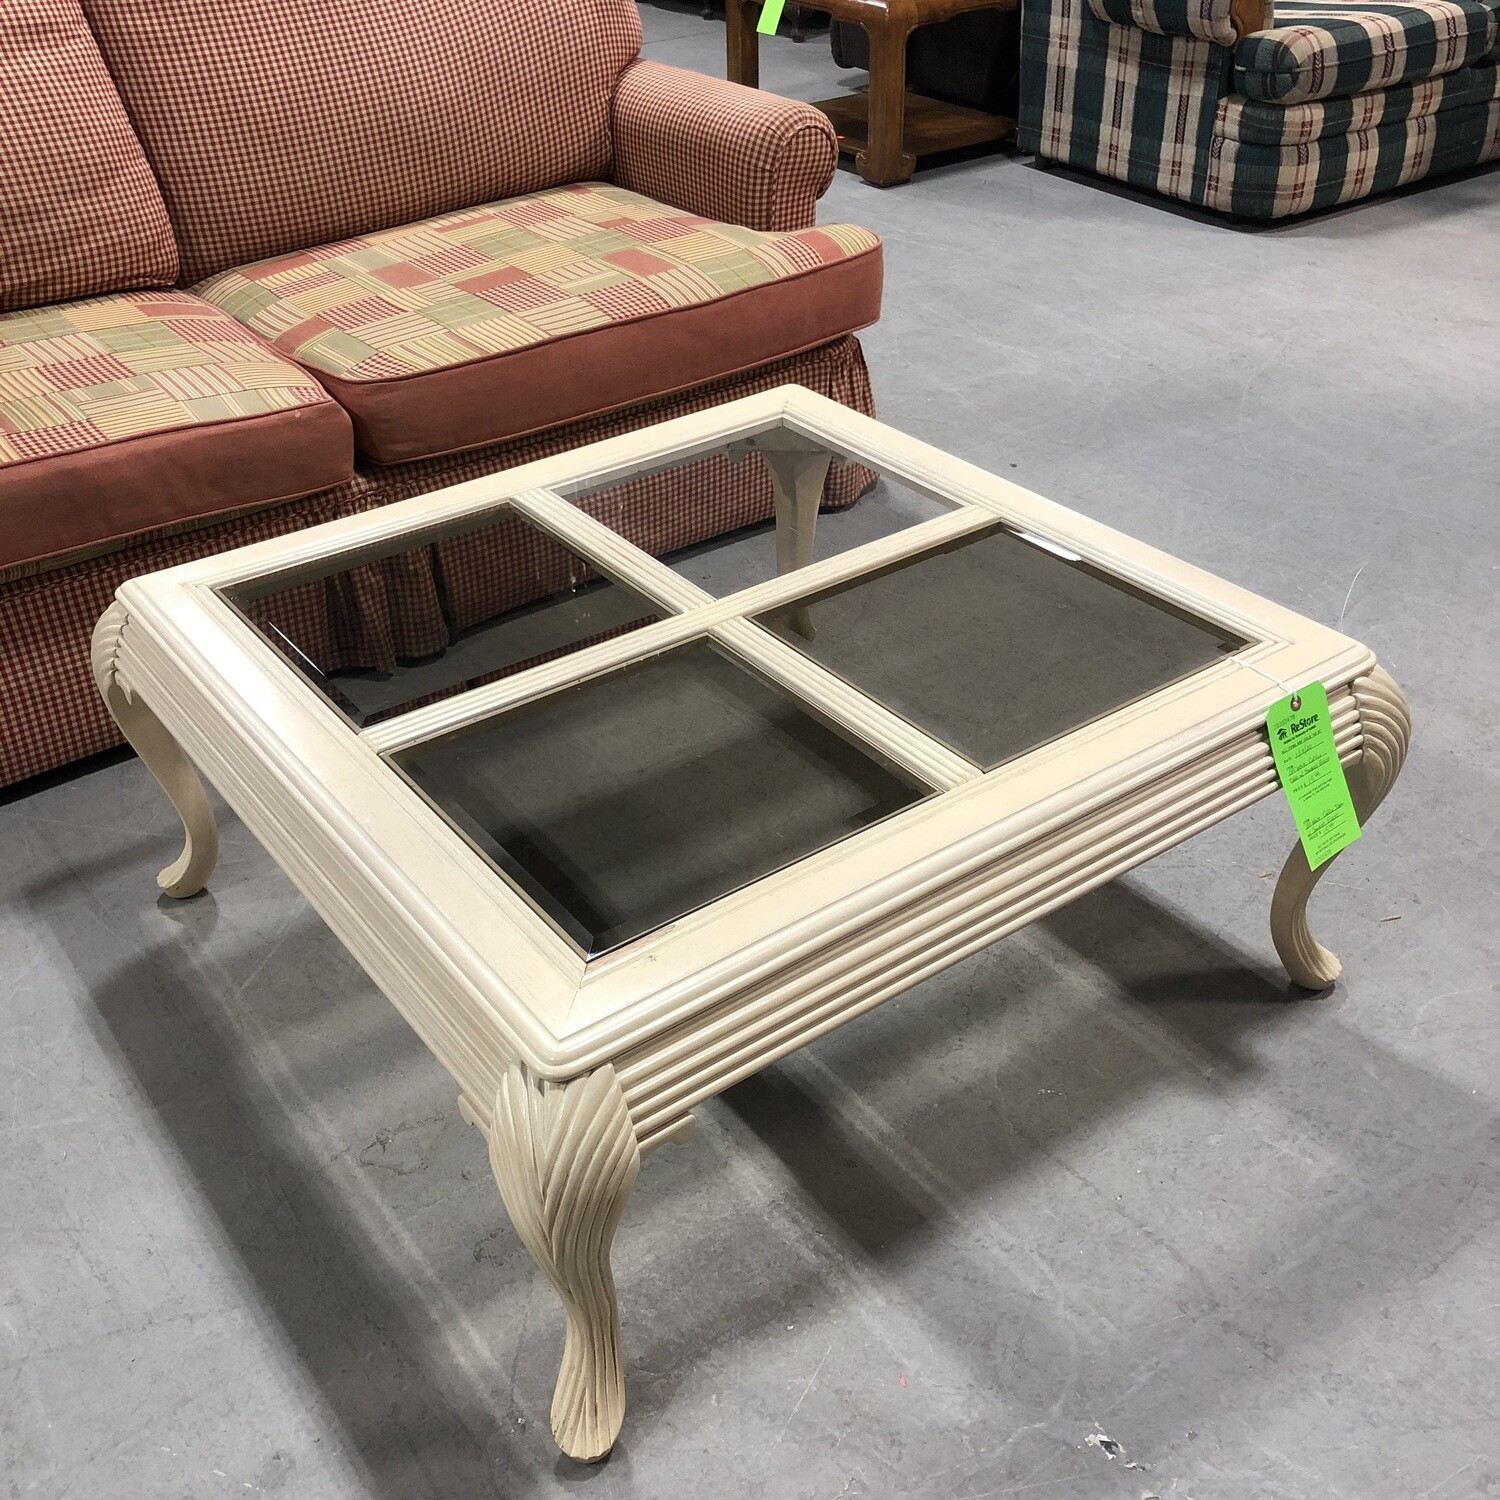 Off-White Coffee Table with Smoked Glass